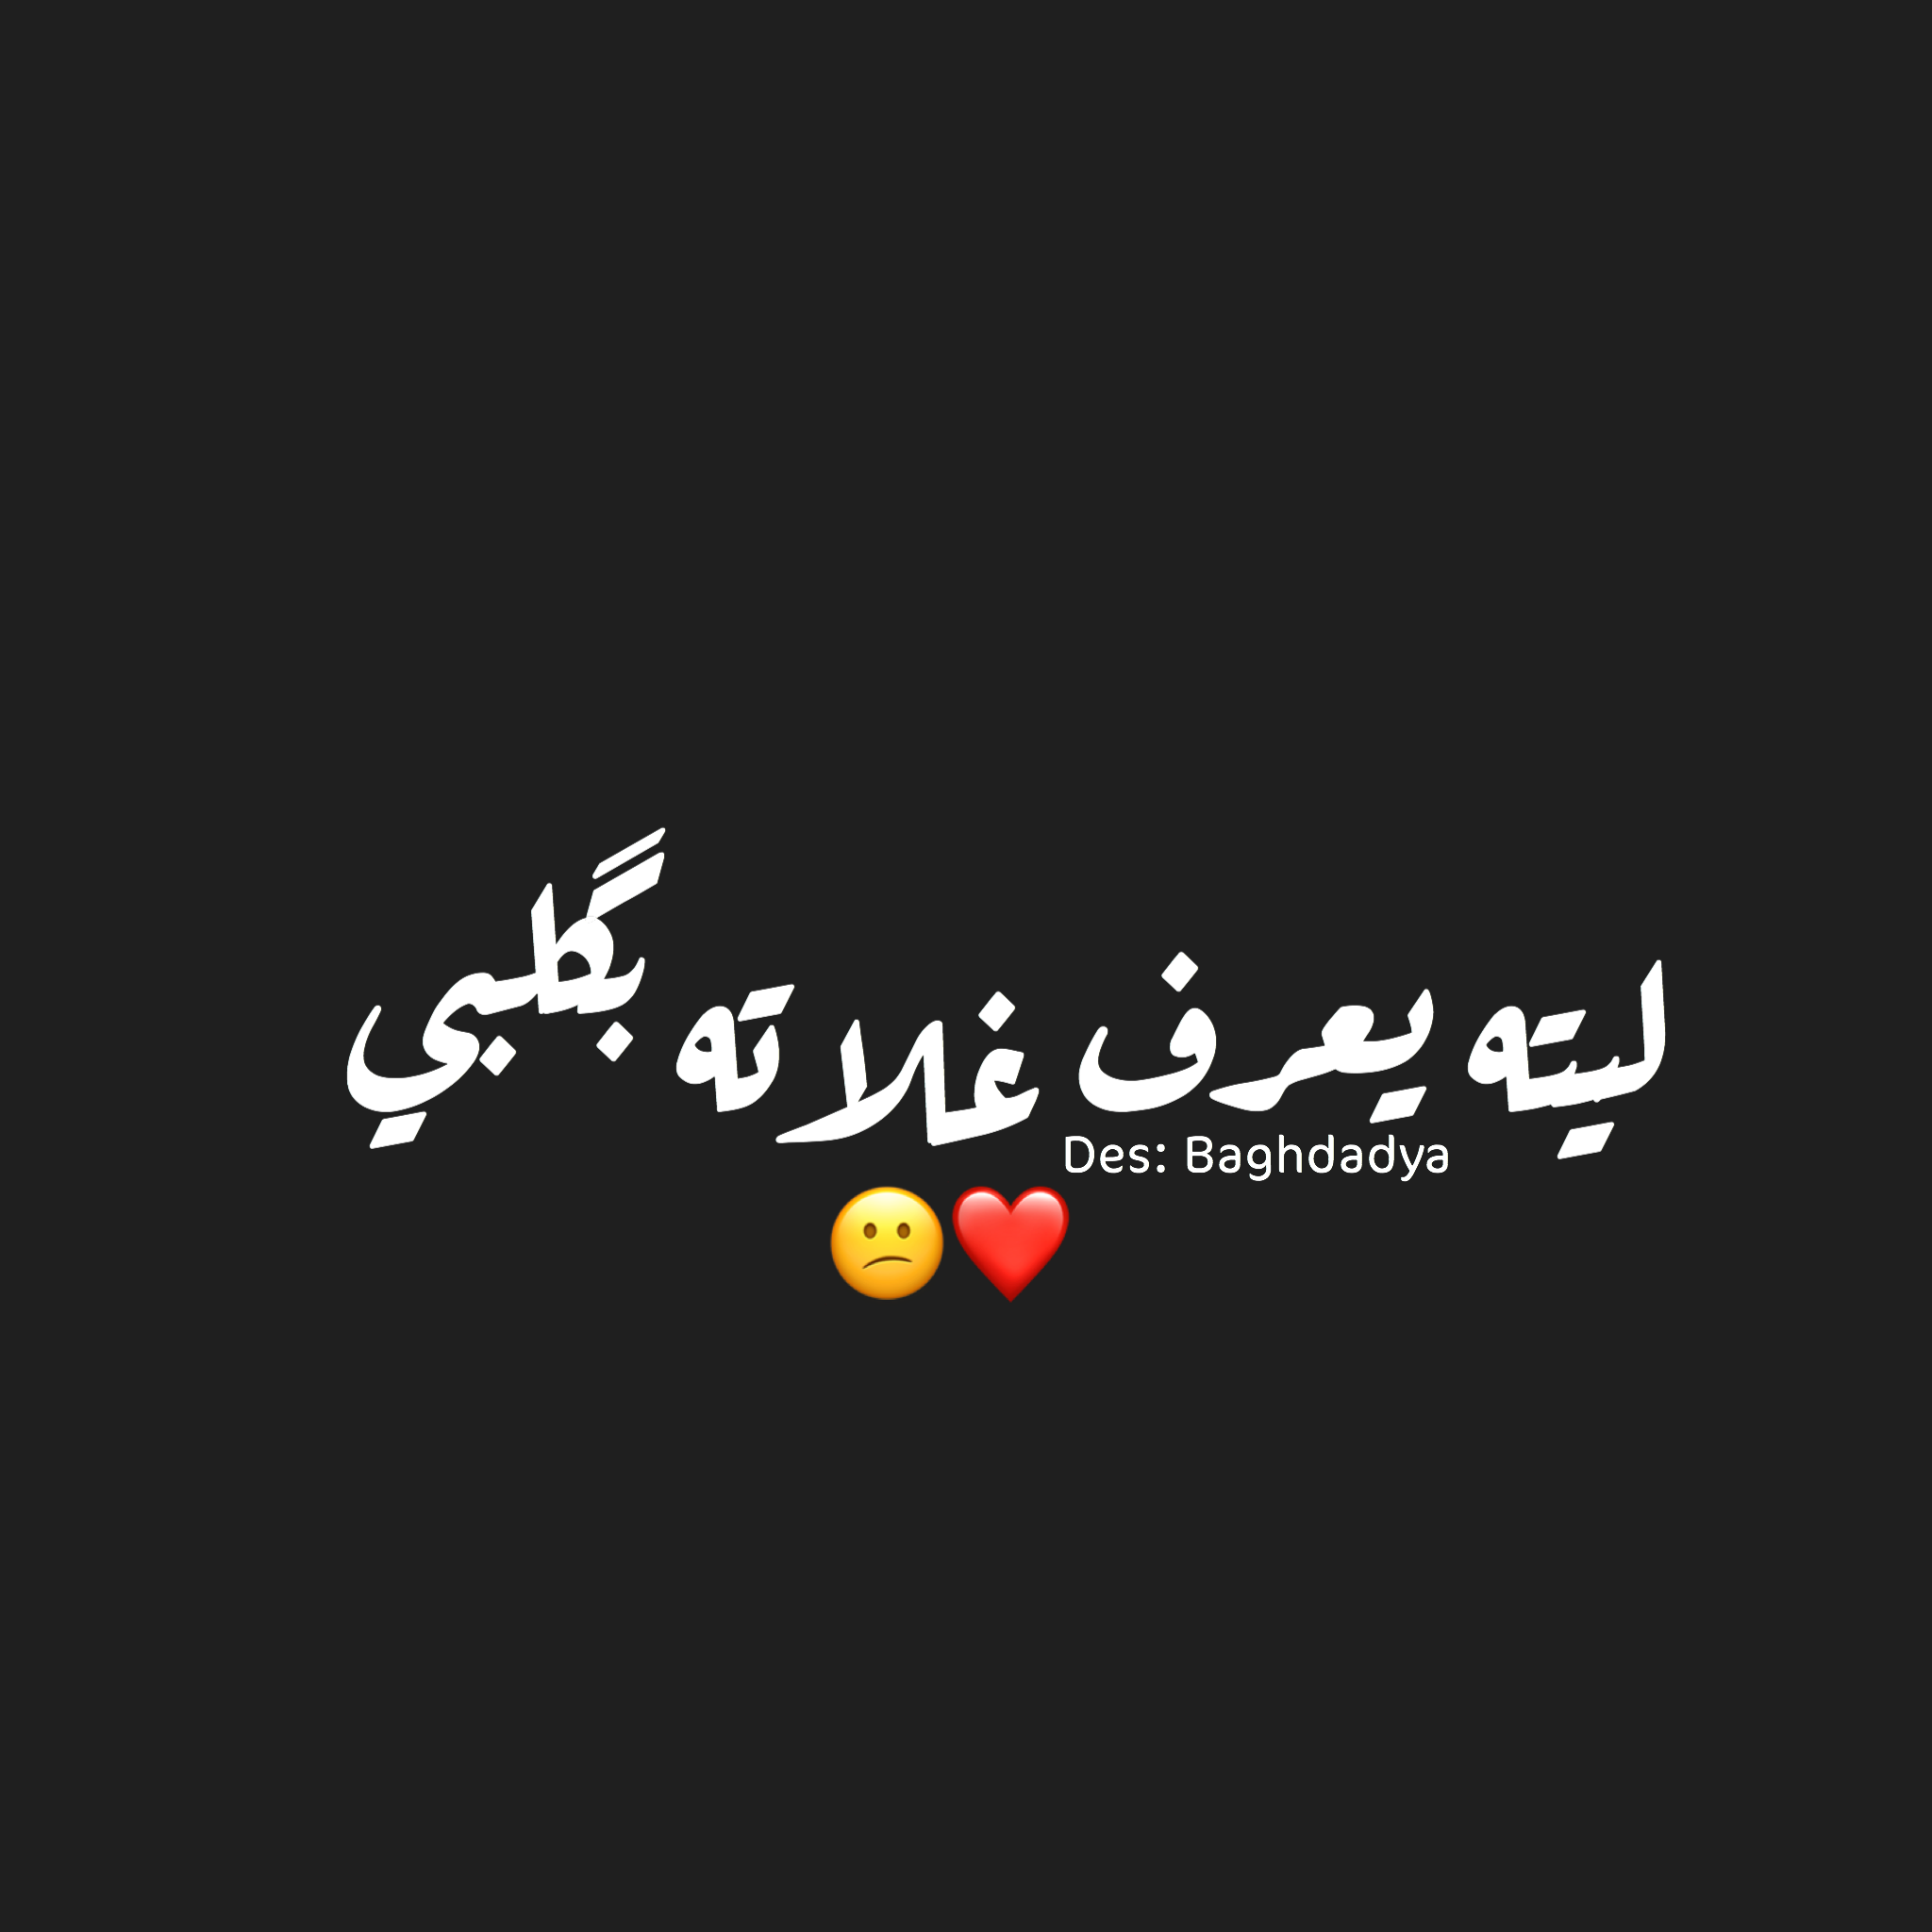 Pin By Scorpion On اشعار بغداديه Arabic Quotes Quotes Arabic